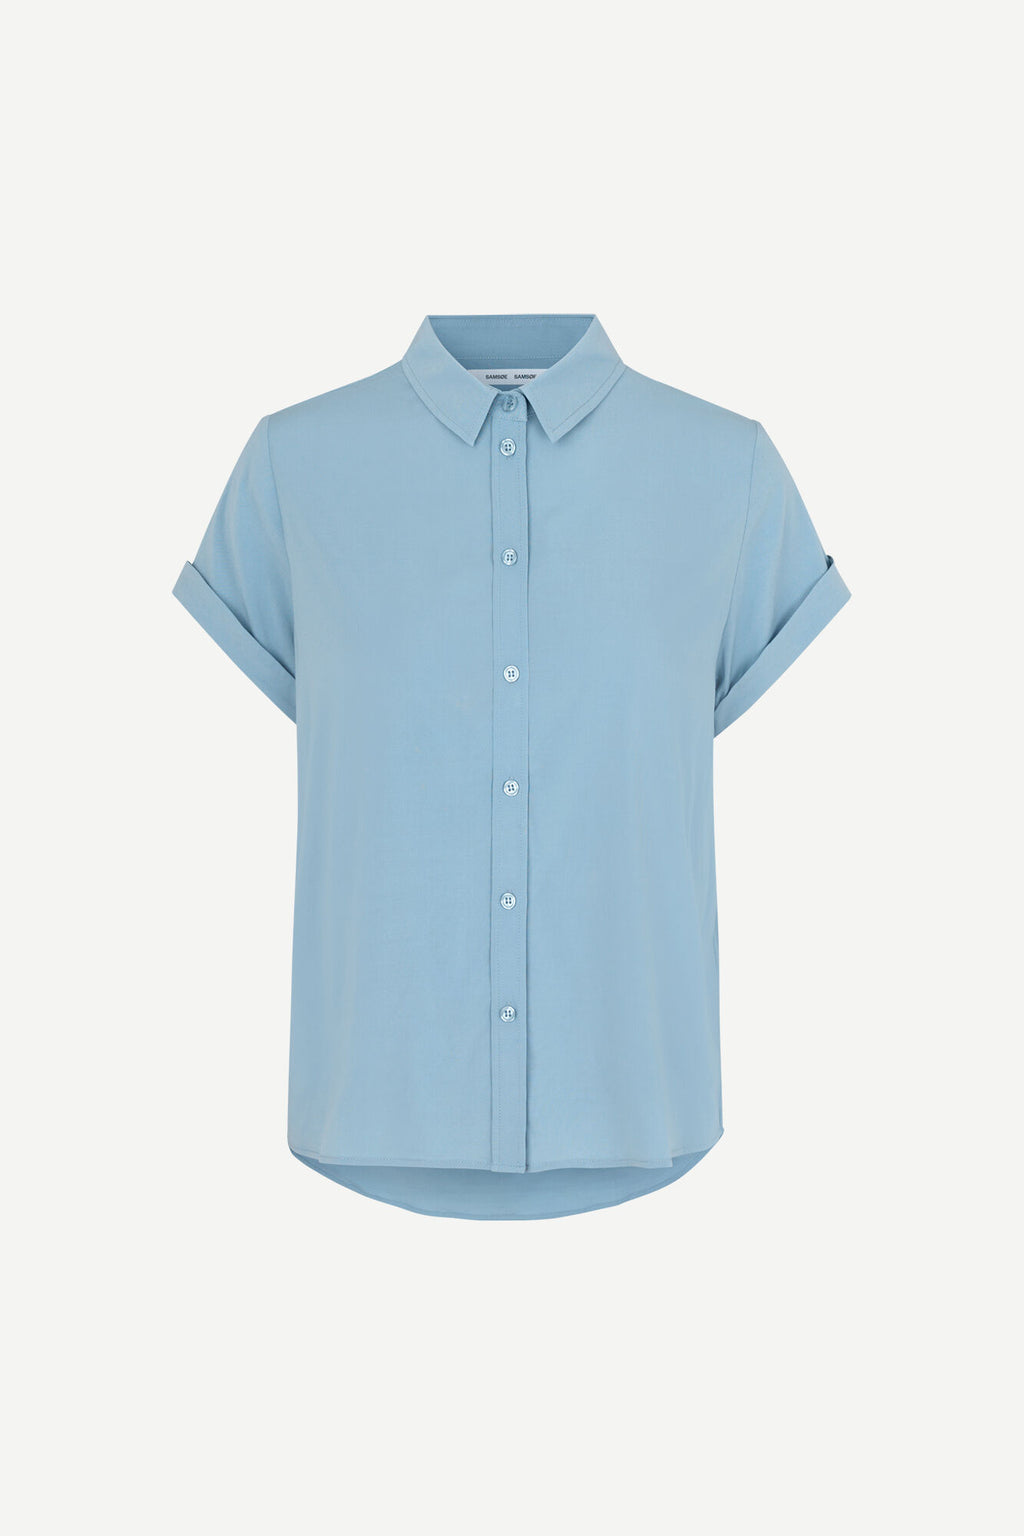 Samsøe Samsøe Majan Ss Shirt Dusty Blue